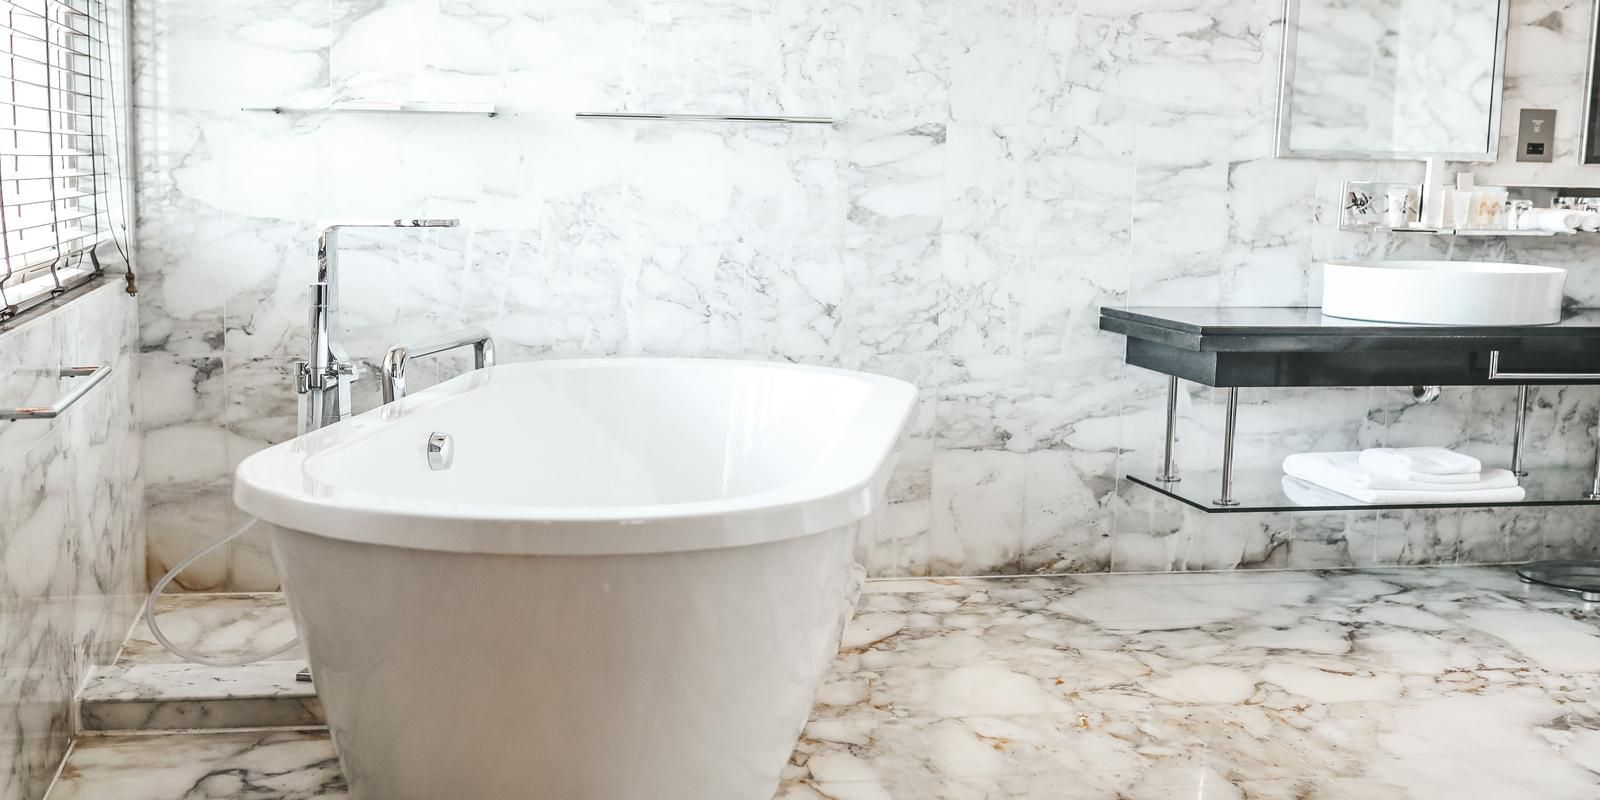 Luxurious stand alone bathtub, ready for the bubbles